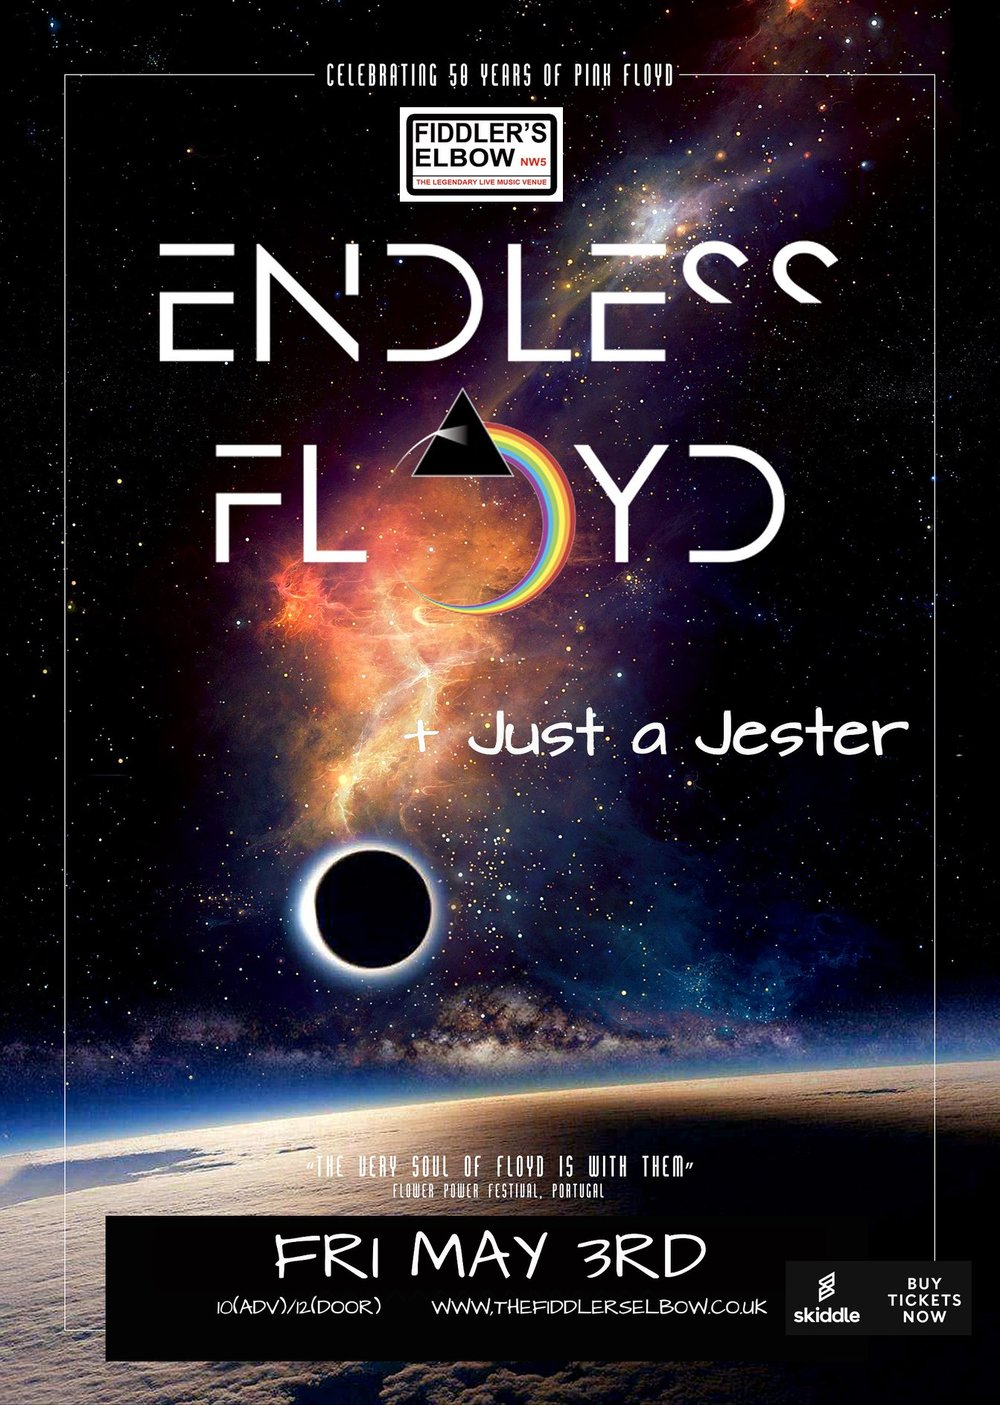 Pink Floyd tribute, ENDLESS FLOYD  at The Fiddler's Elbow promotional image